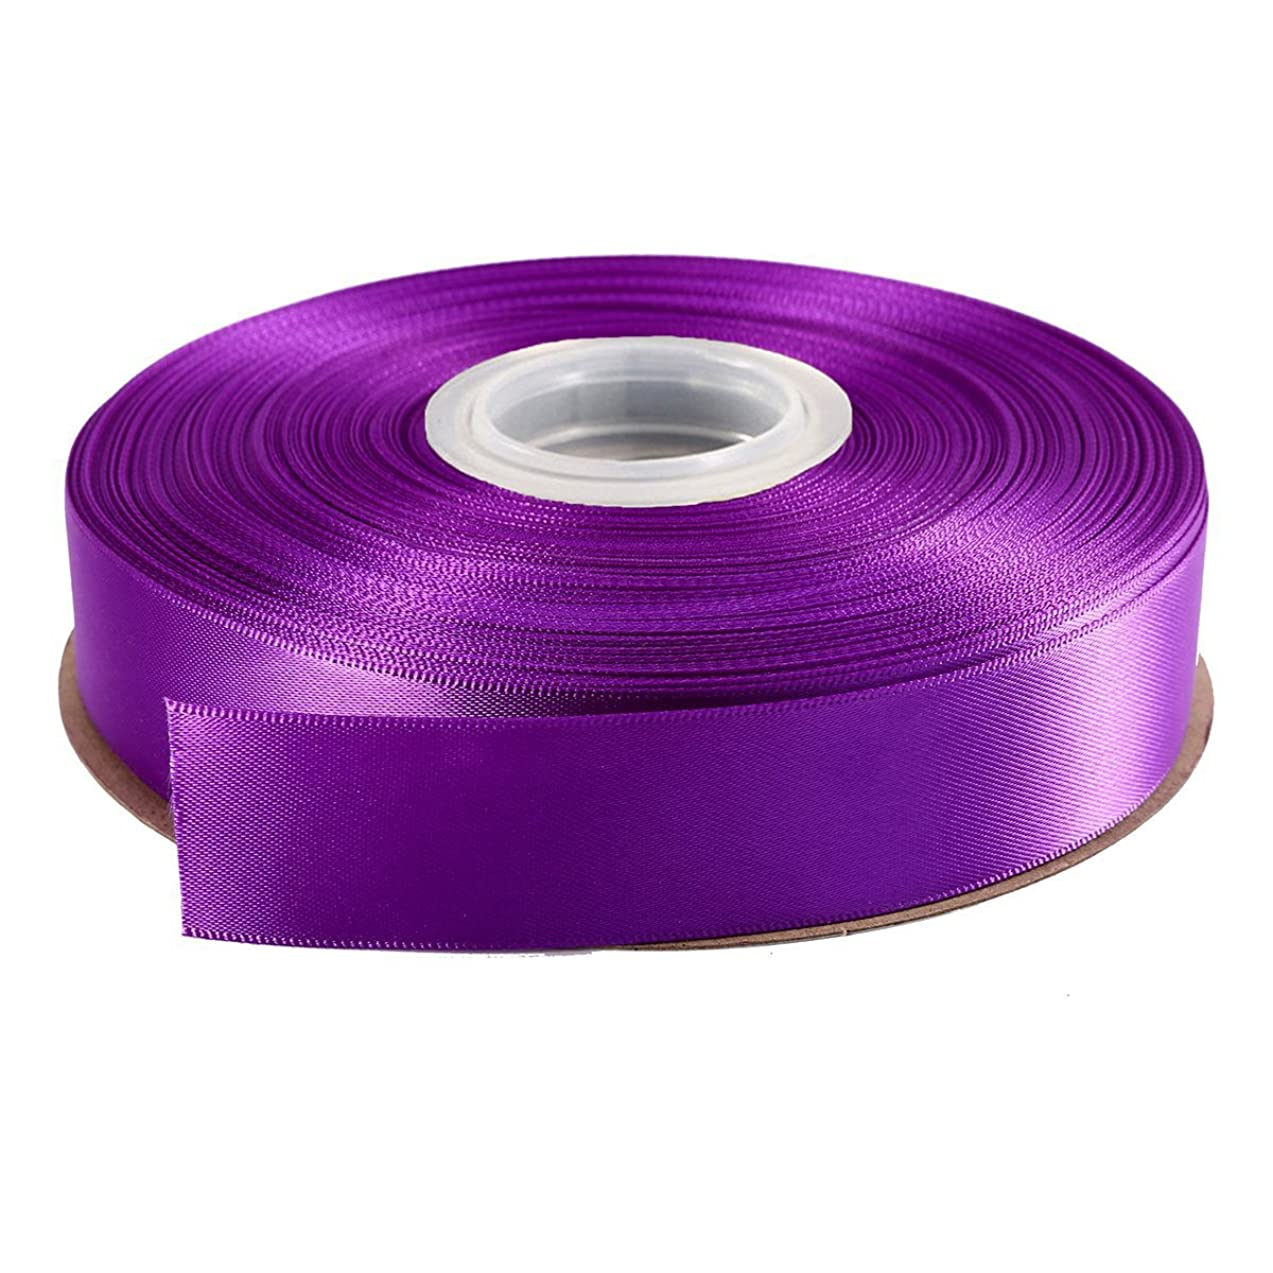 DUOQU 7/8 inch Wide Double Face Satin Ribbon 50 Yards Roll Multiple Colors Purple